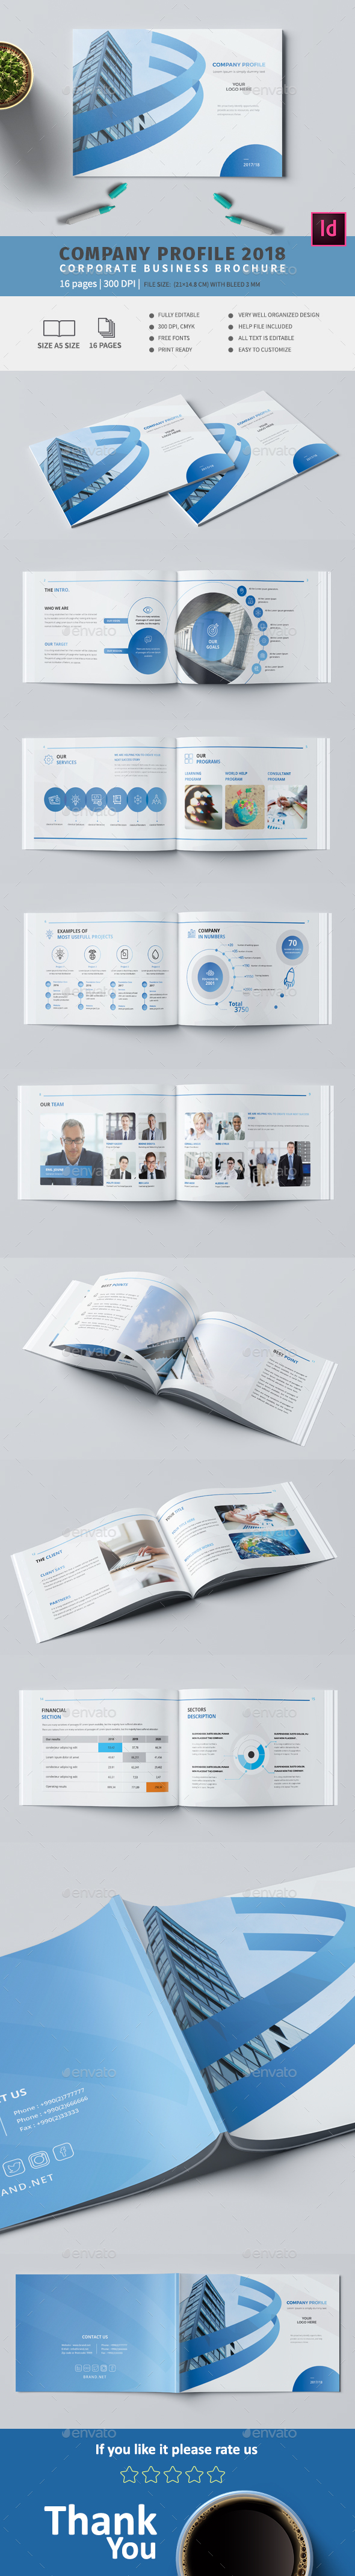 GraphicRiver Company A5 Profile 21197665